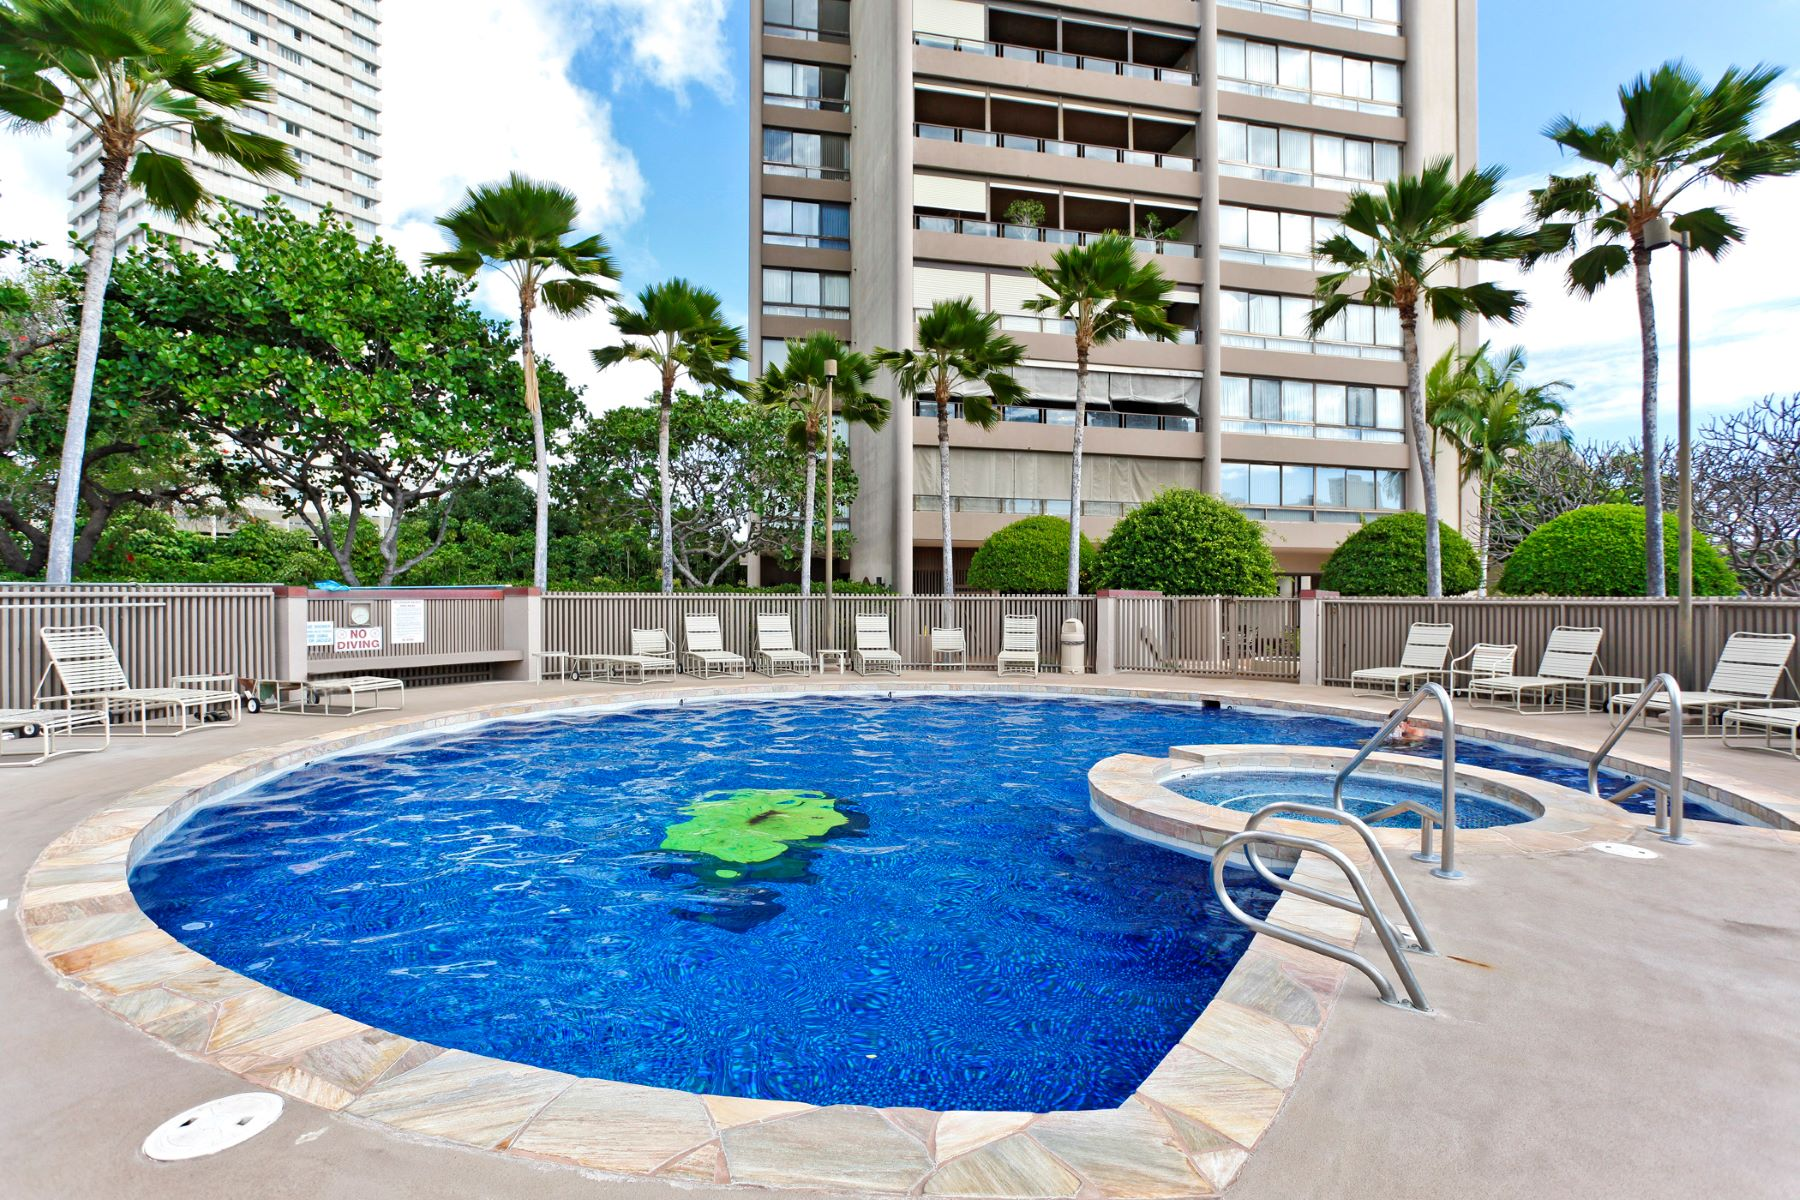 Additional photo for property listing at Royal Iolani 581 Kamoku Street #2604 Honolulu, Hawaii 96826 United States